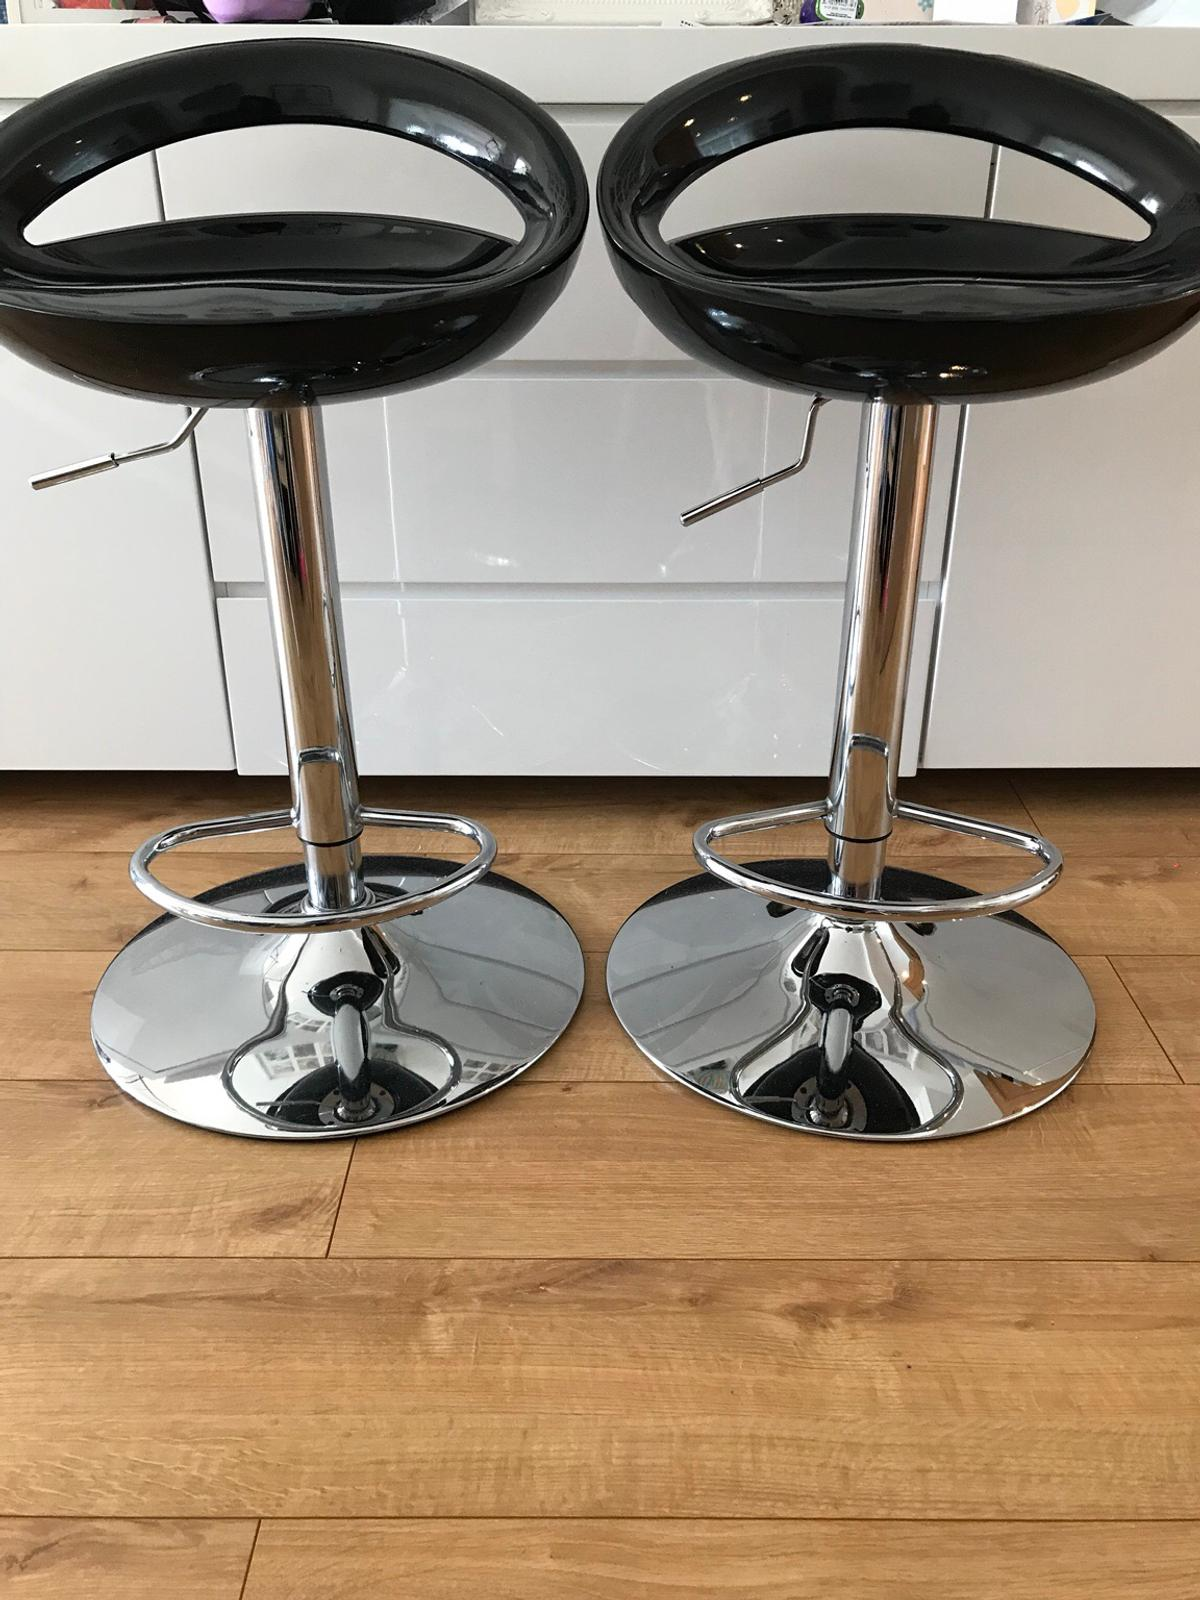 Excellent Two Height Adjustable Bar Stools Lamtechconsult Wood Chair Design Ideas Lamtechconsultcom